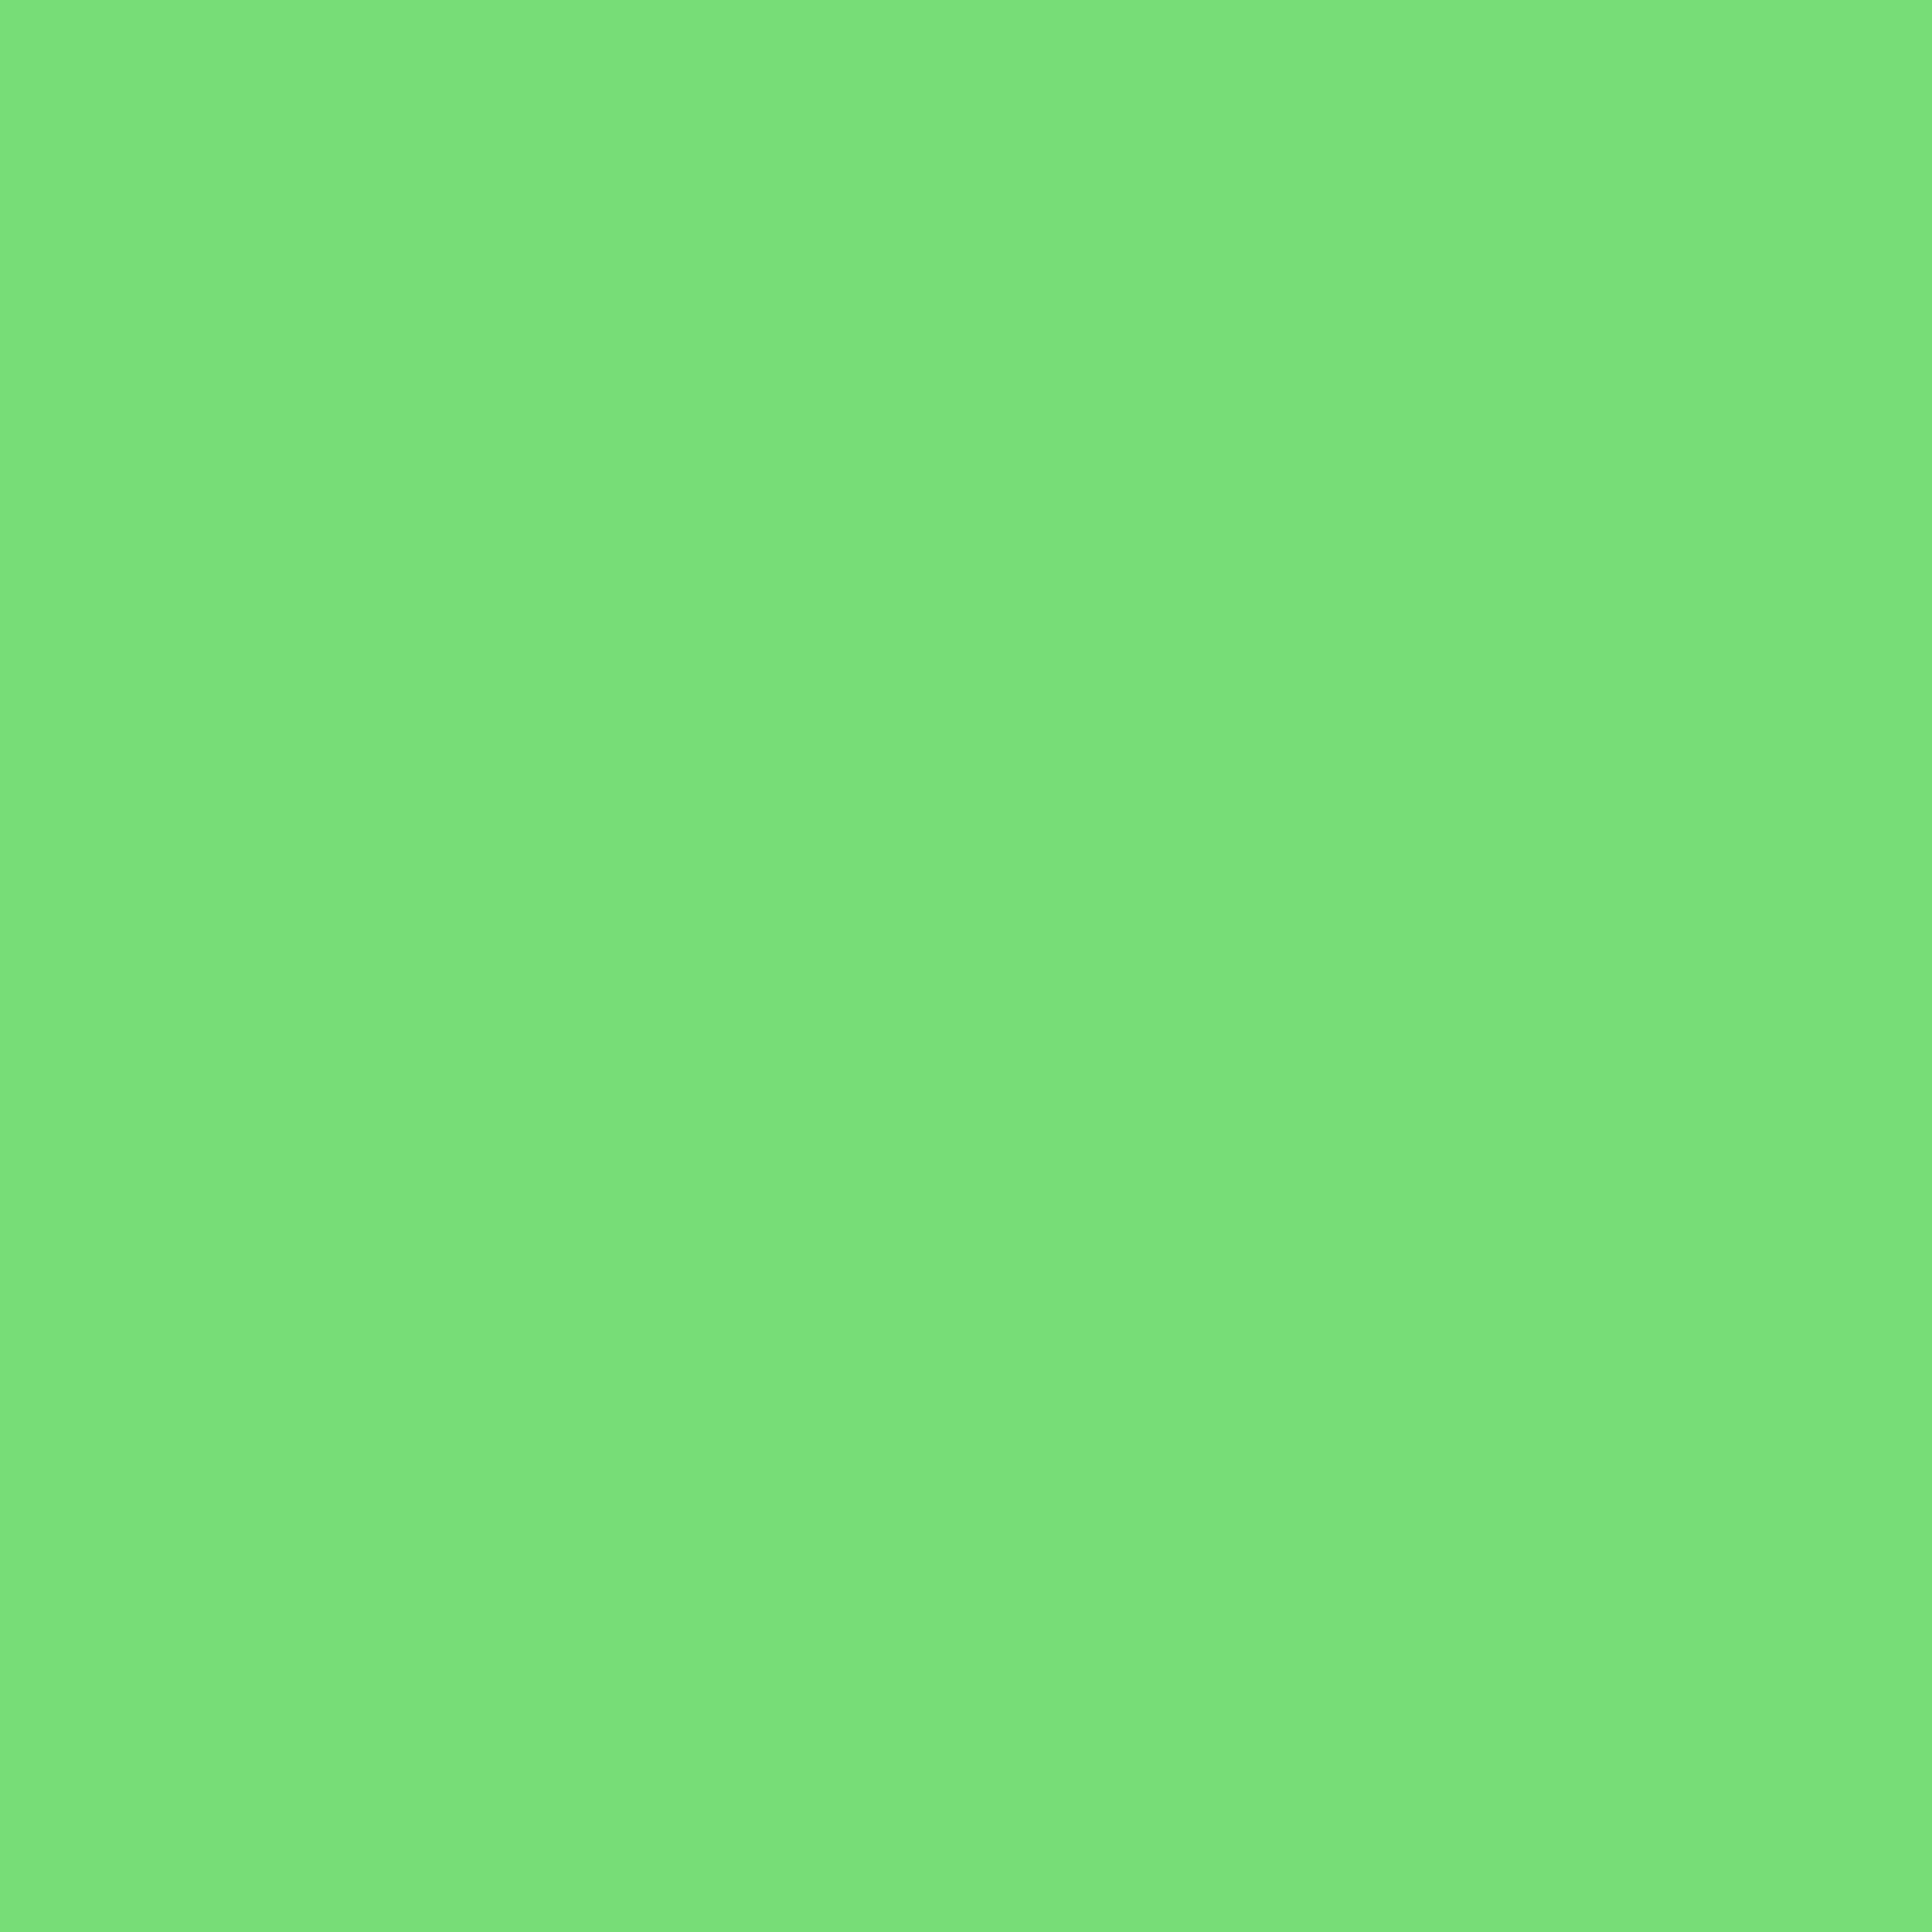 2048x2048 Pastel Green Solid Color Background